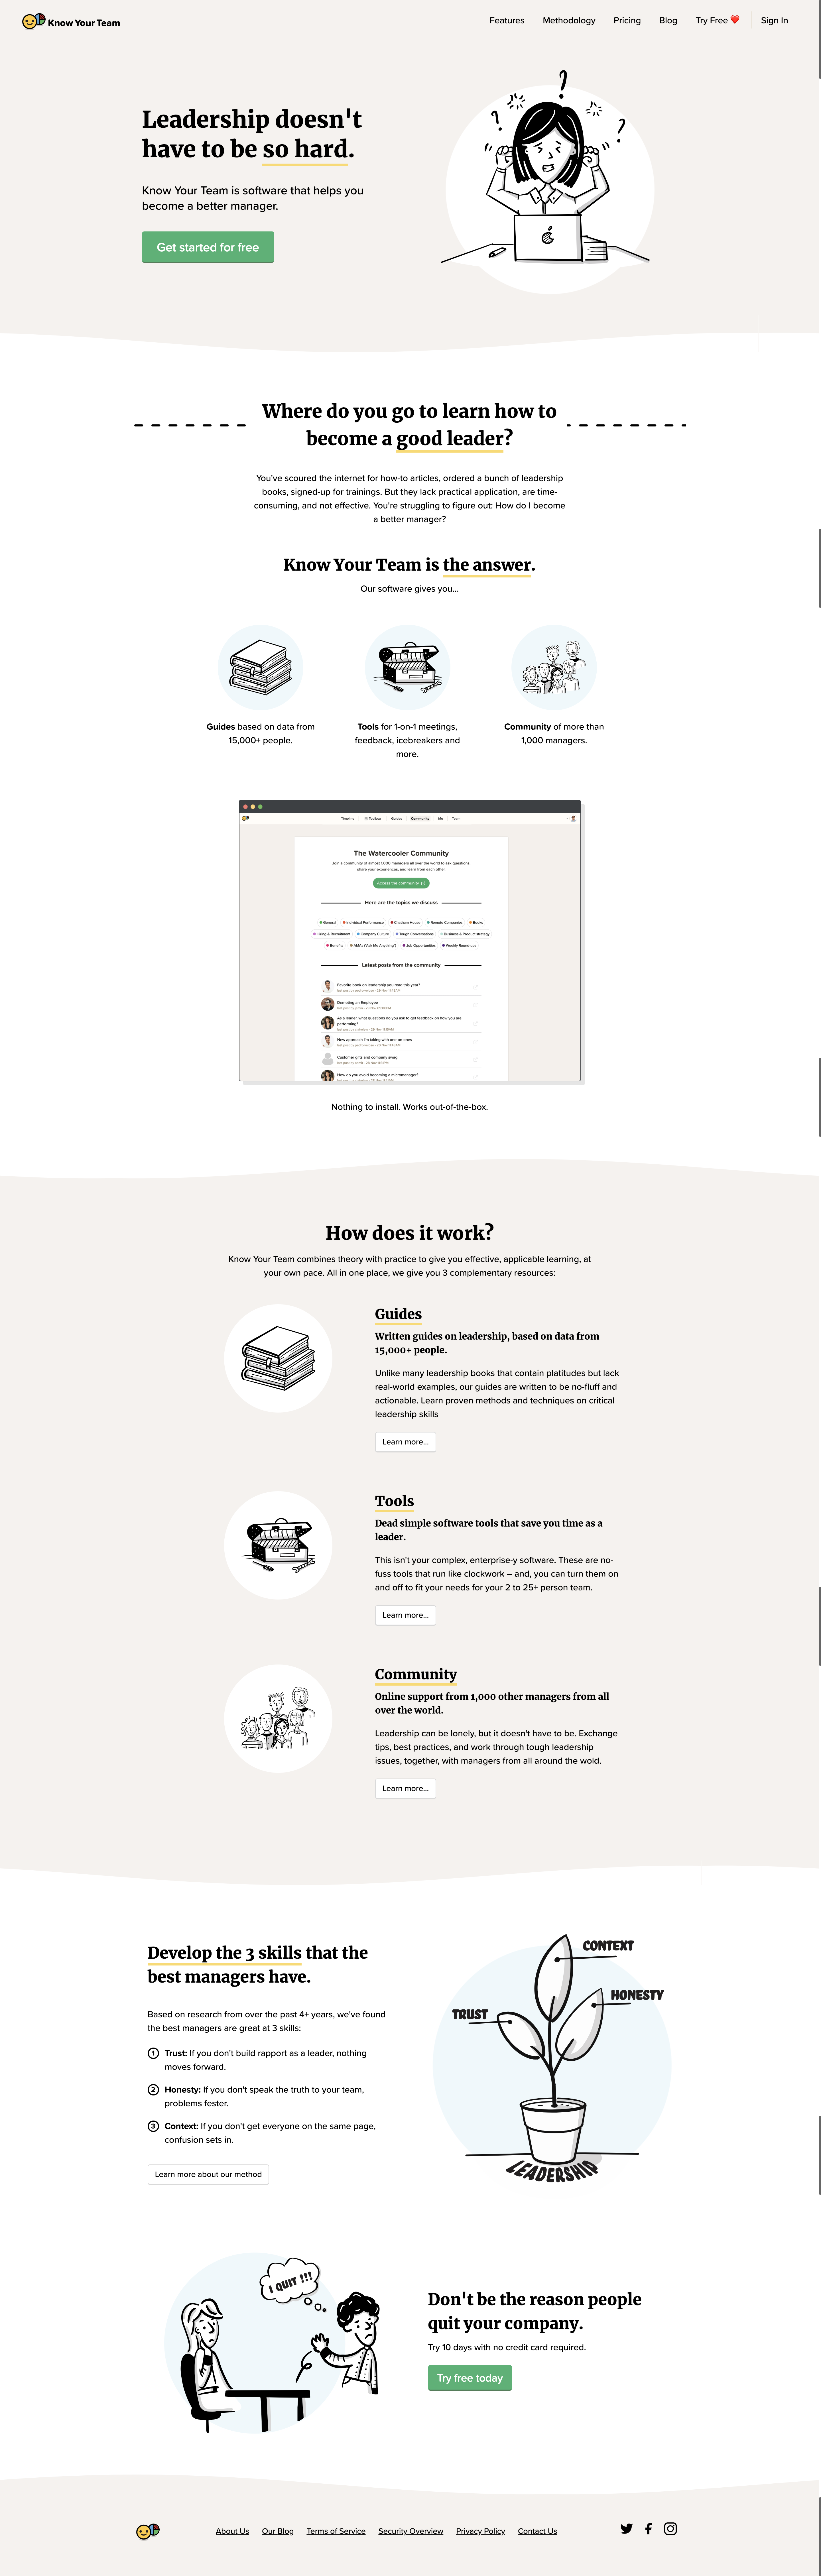 Know Your Team - SaaS Landing Page Inspiration + Breakdown